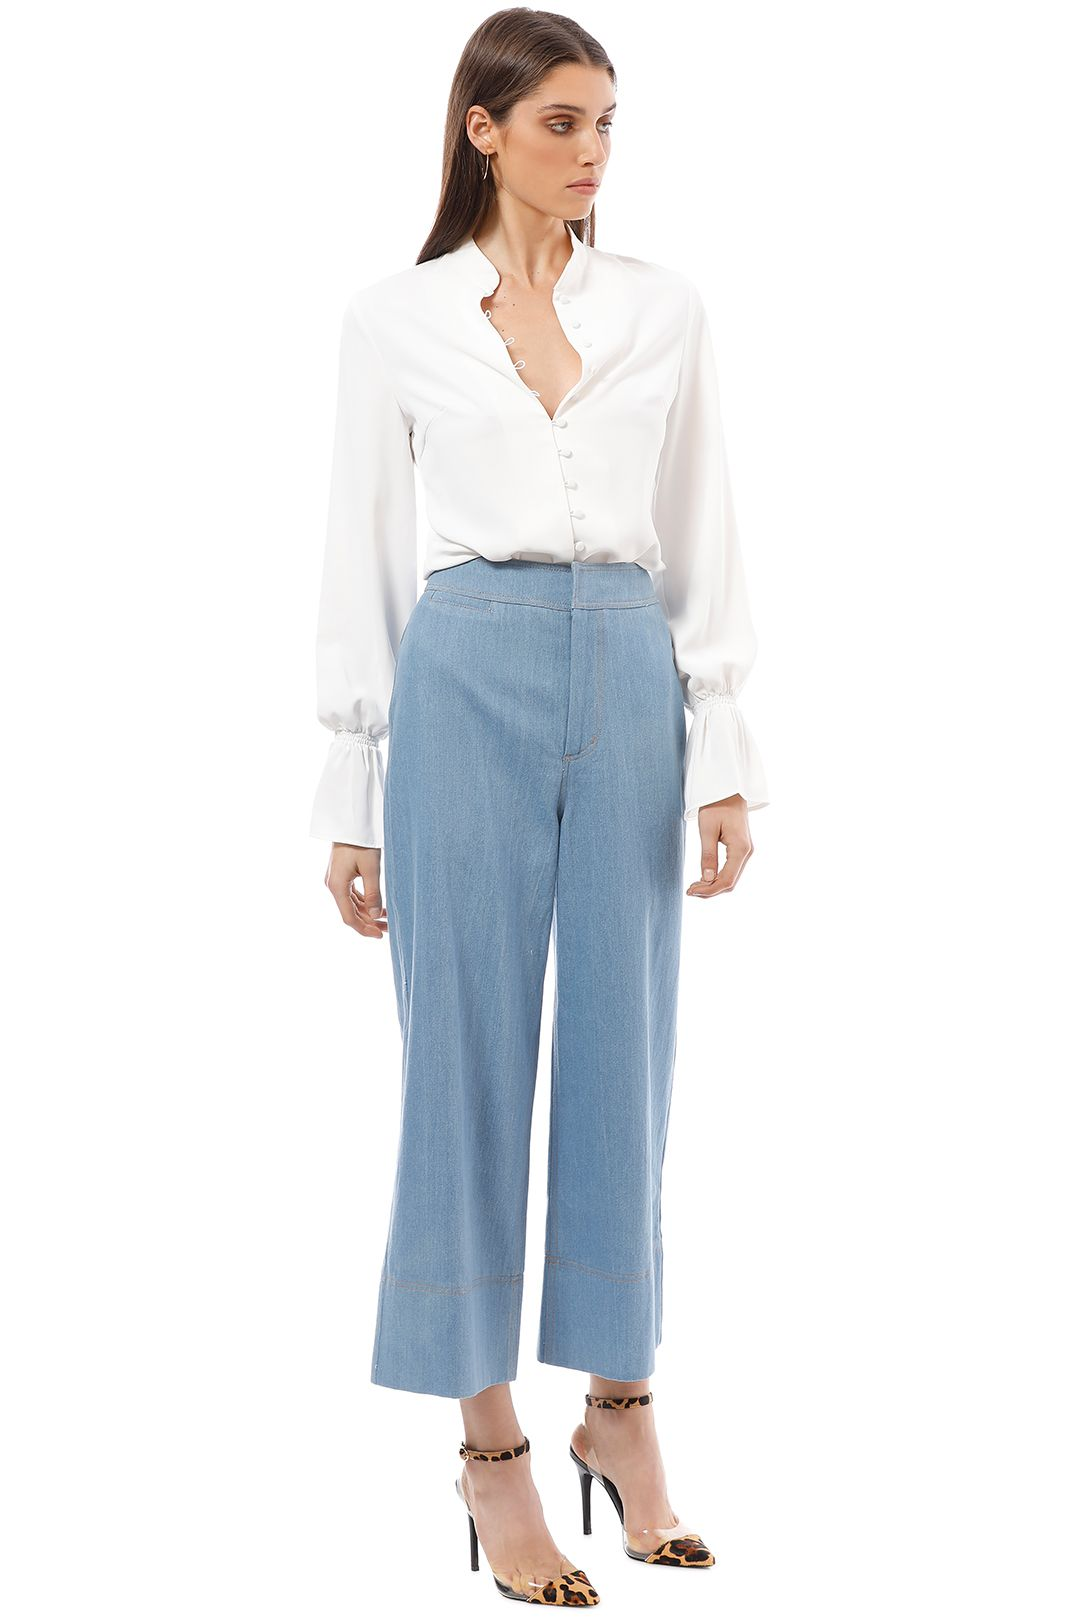 CMEO Collective - Adept Pants - Blue - Side